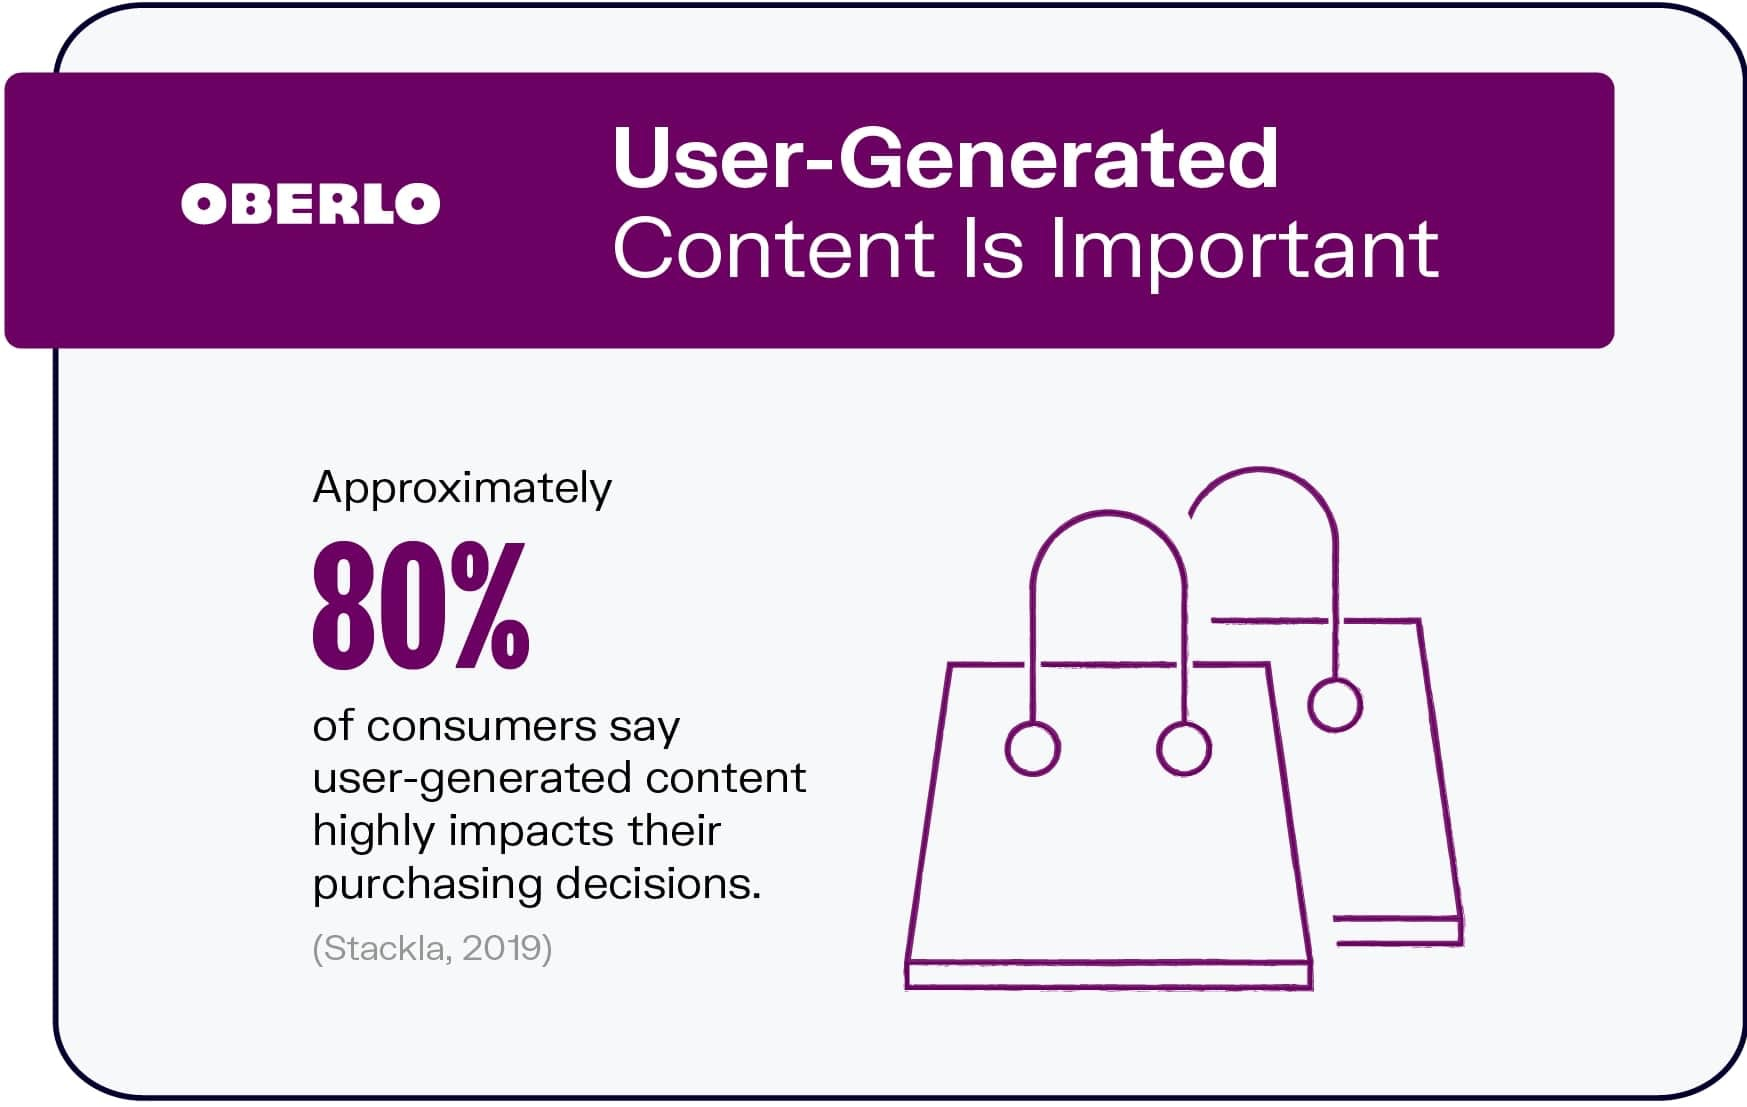 User-Generated Content Is Important